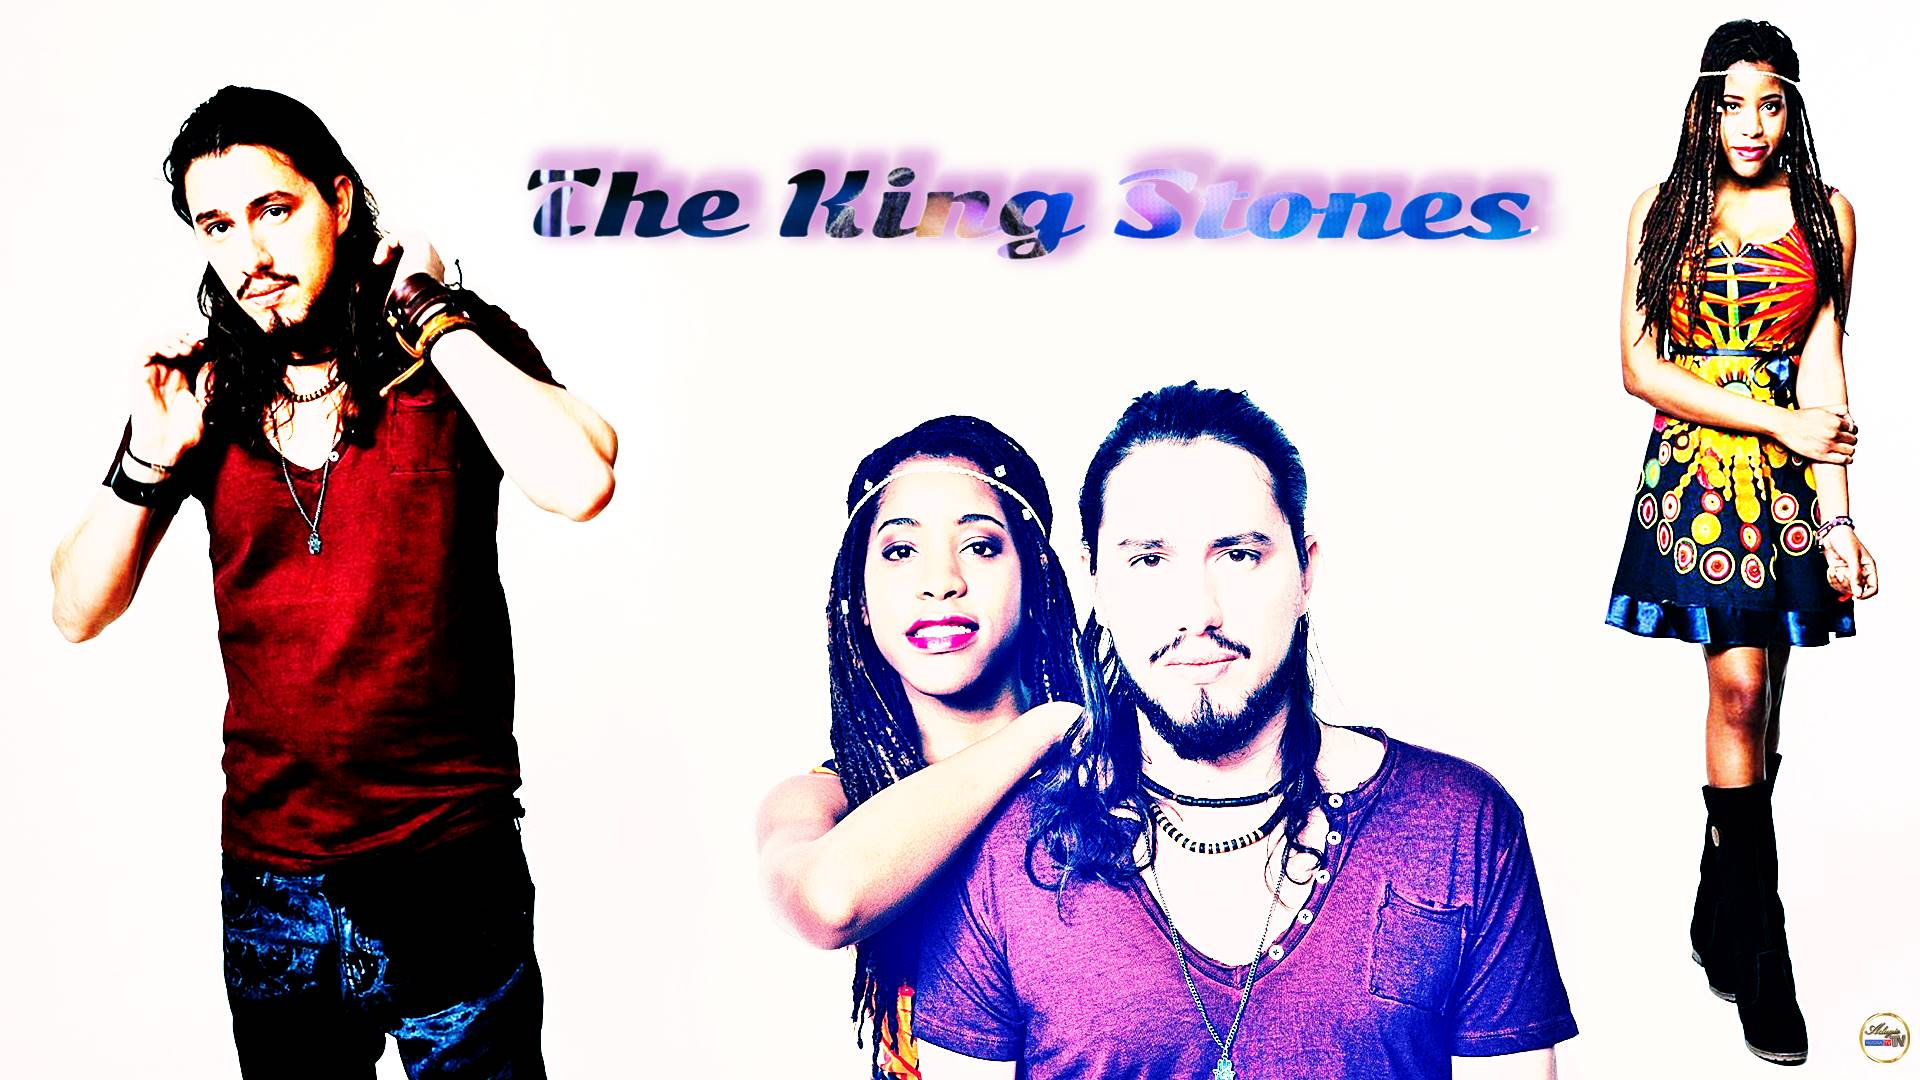 The King Stones